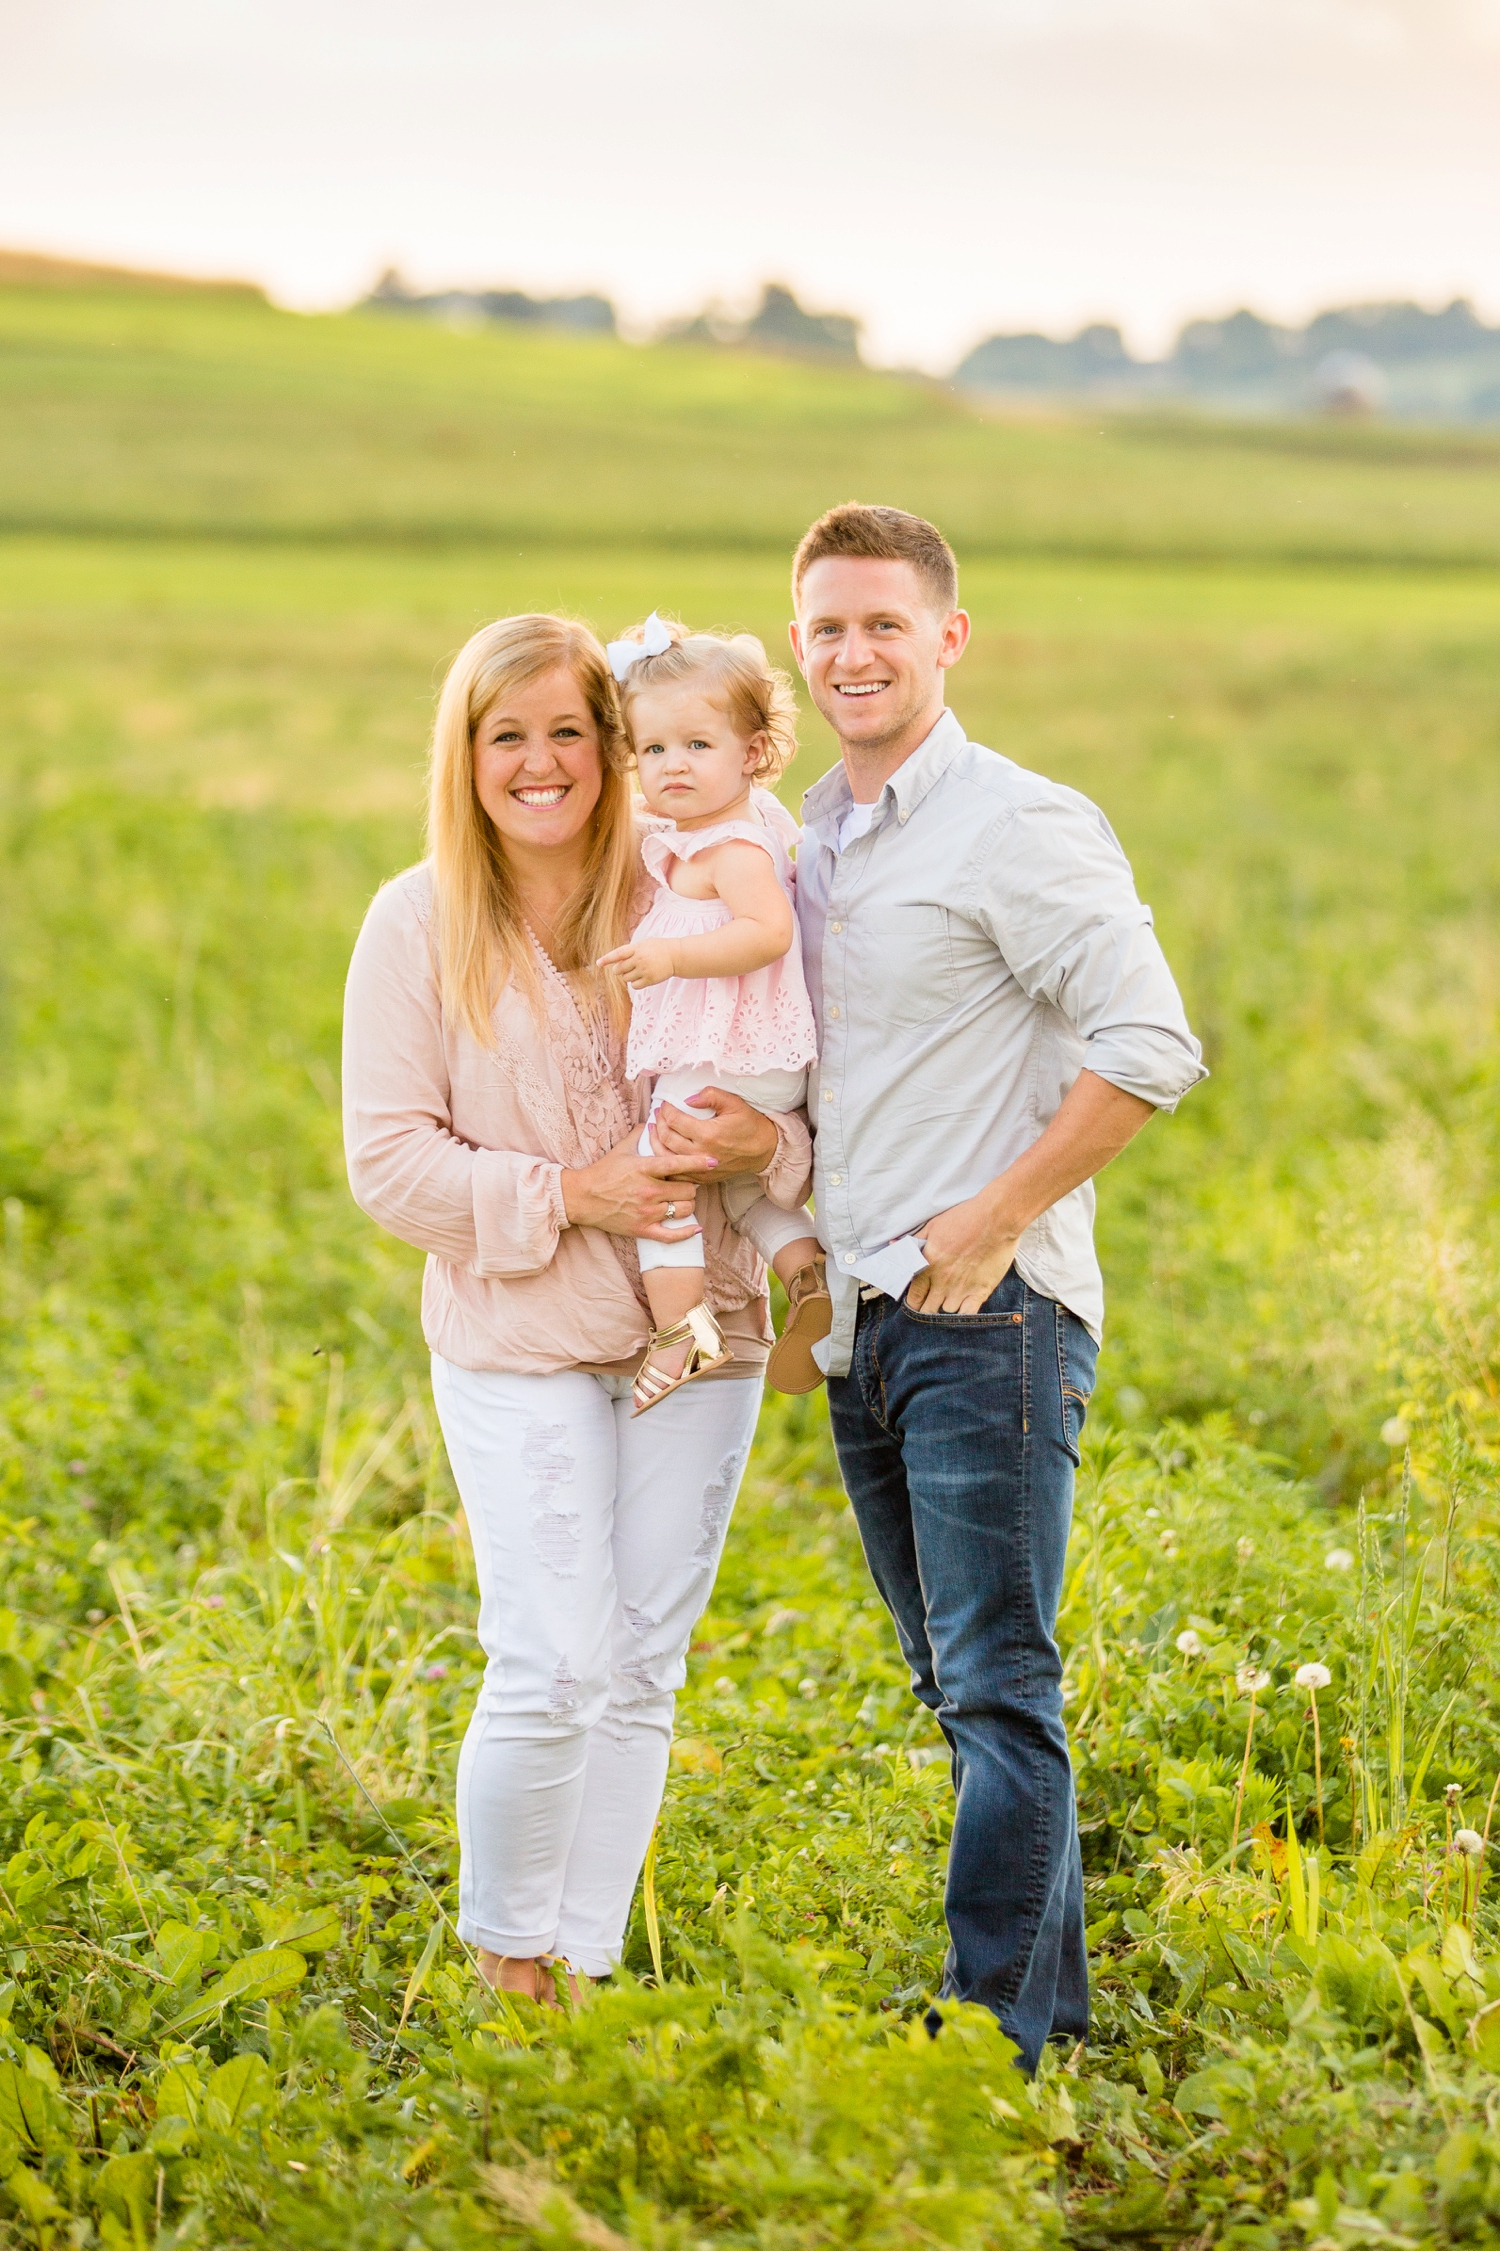 pittsburgh family photographer, pittsburgh senior photographer, mcconnells mill senior photos, cleland rock